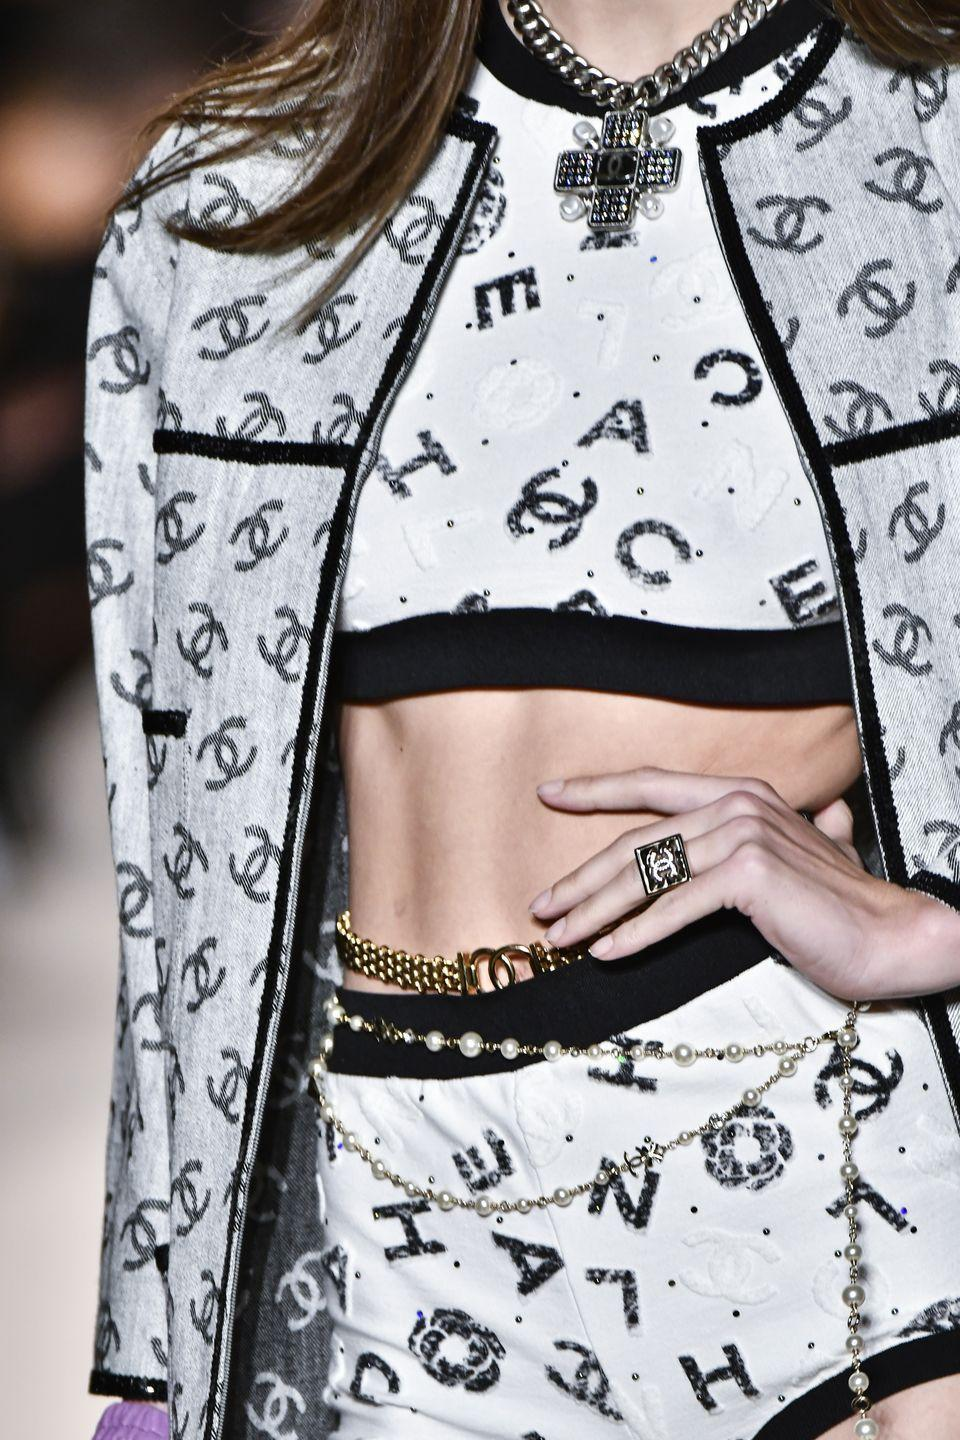 """<p>There's been a lot of talk about archive fashion lately, and there's no question that vintage is becoming more and more mainstream. What's more, the '90s have reached peak popularity in 2021. So, Chanel gave us the throwback show we've all been dreaming of. Photographers lined the span of the catwalk like they did in the days before social media, while Christine and the Queen's cover of George Michael's """"Freedom! '90"""" played. There were all the covetable late '80s and early '90s looks too. Heart-shaped flap bags, little logo rompers and butterfly prints were everywhere.</p>"""